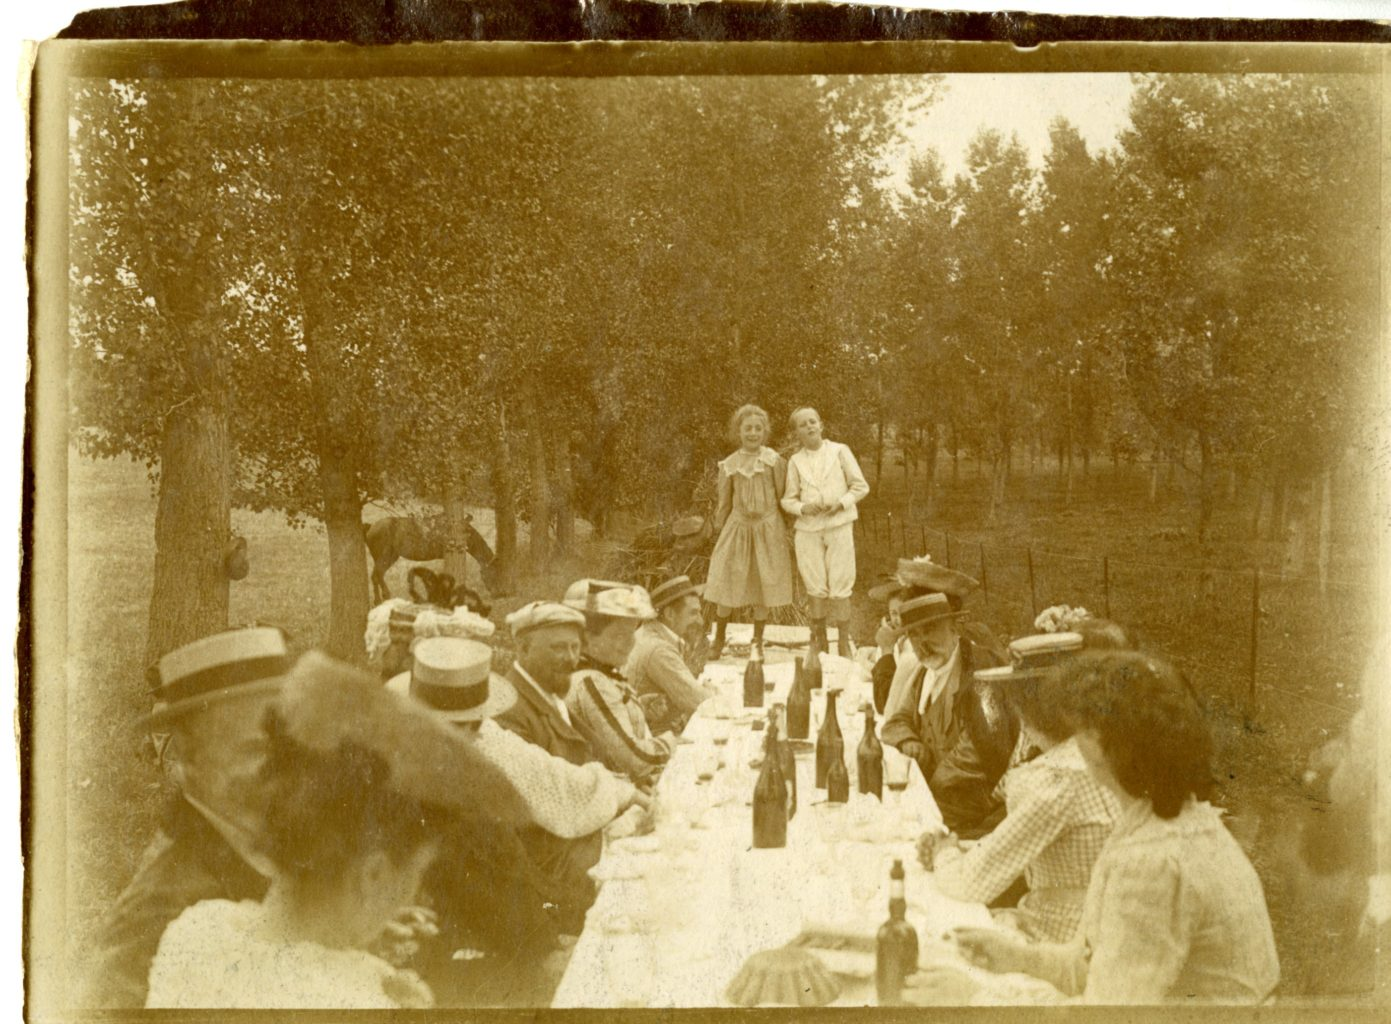 About sixteen people sit around a table outside. Two young children are standing on the end of the table, posing for the photo.